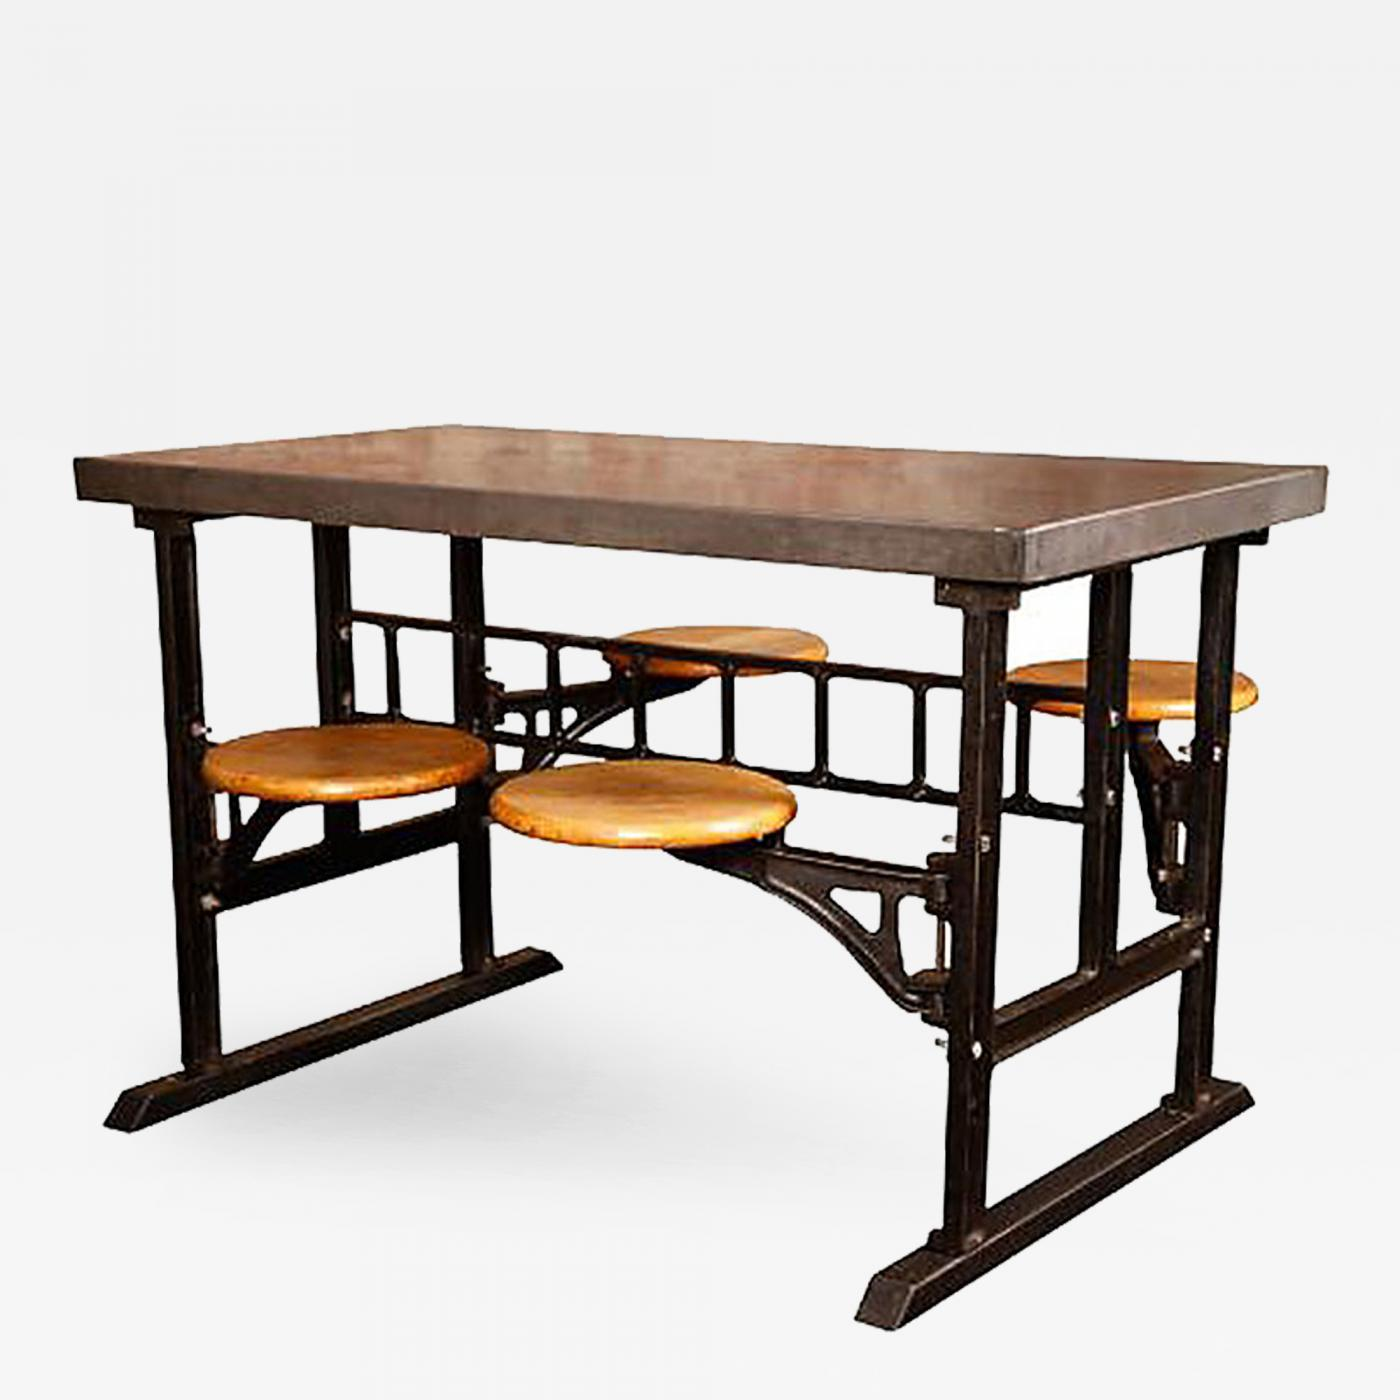 Vintage Industrial Modern Swing Out Seat Dining Breakfast Table